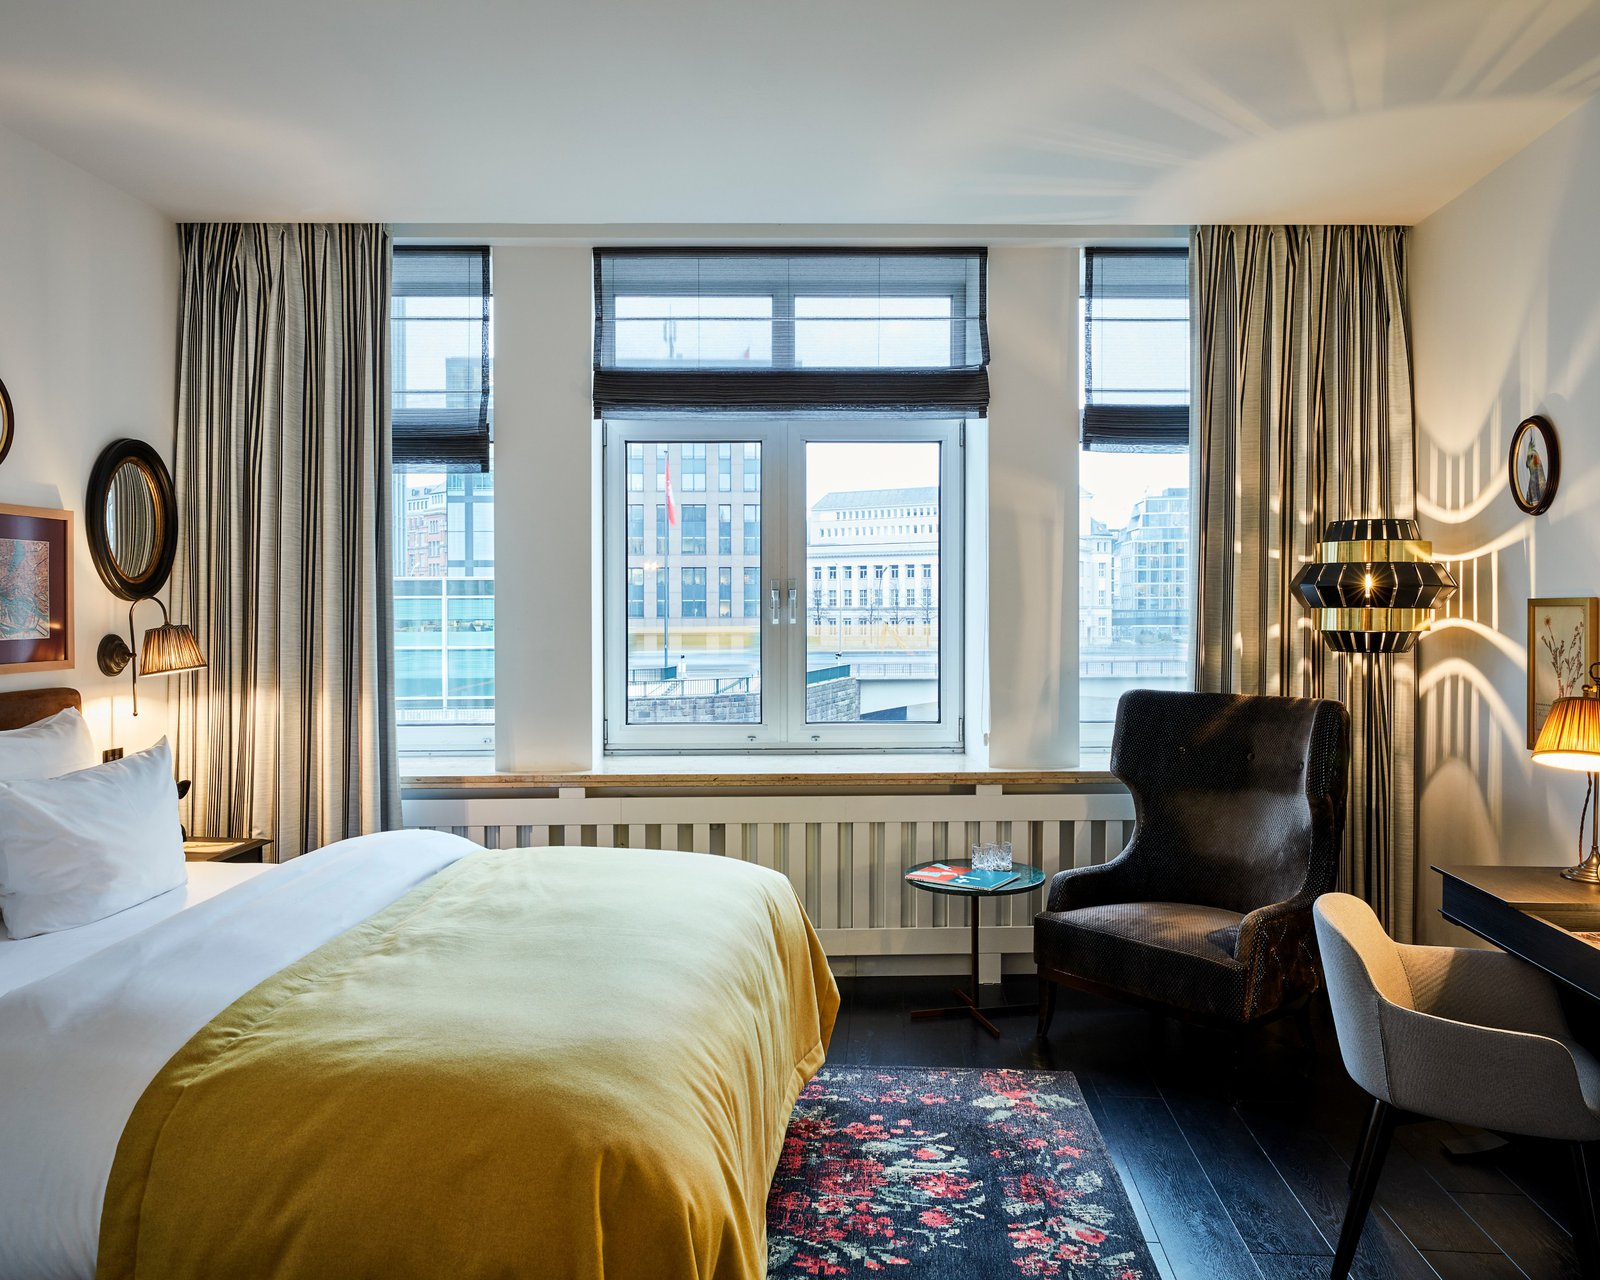 sir-nikolai-hamburg-room-deluxe (19).jpg